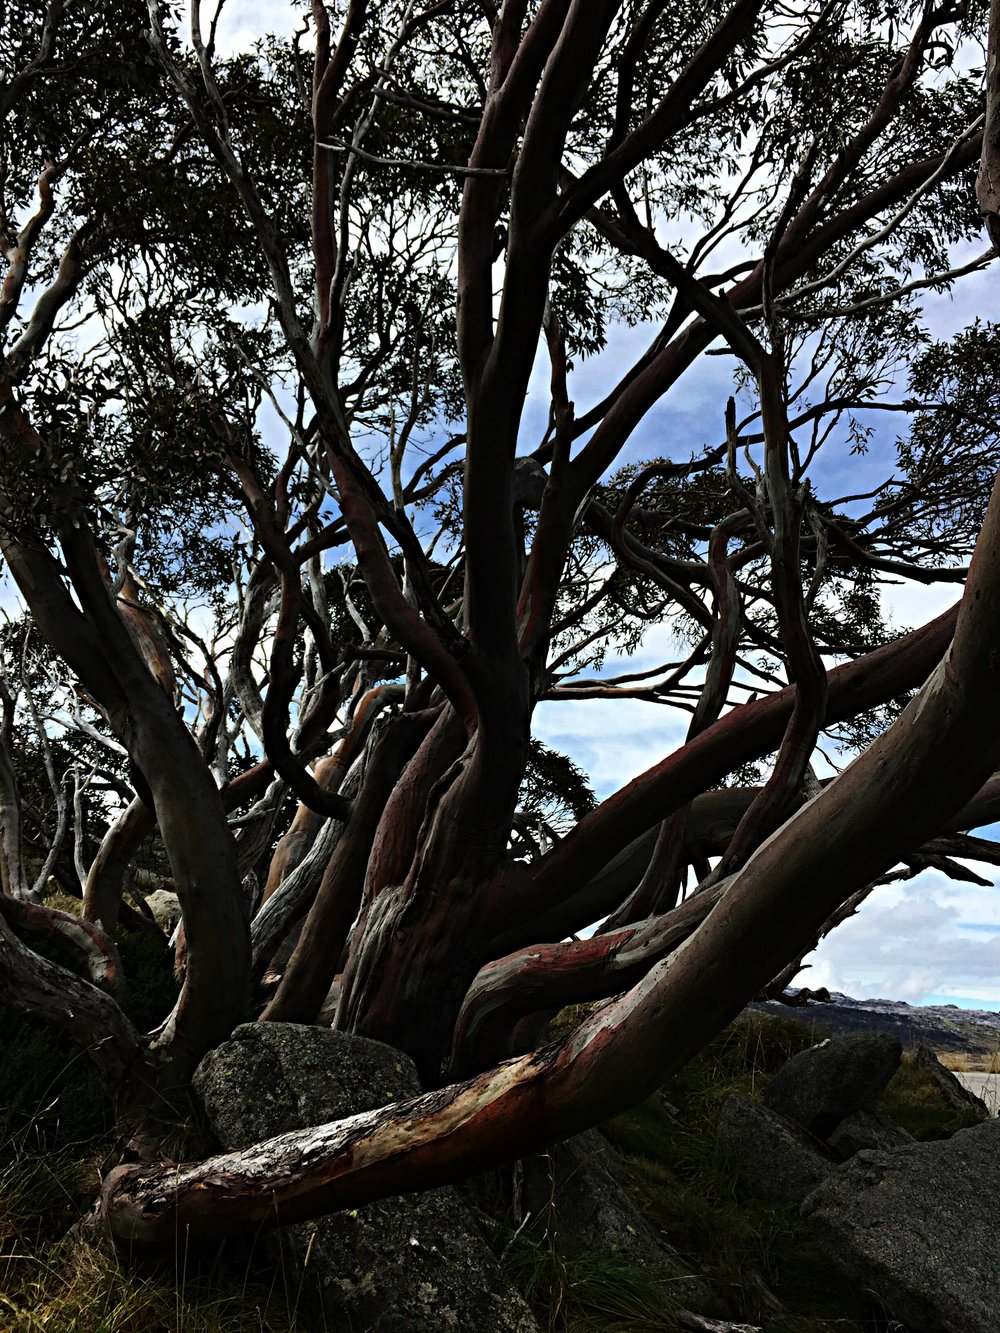 Glorious snow gums and scenery